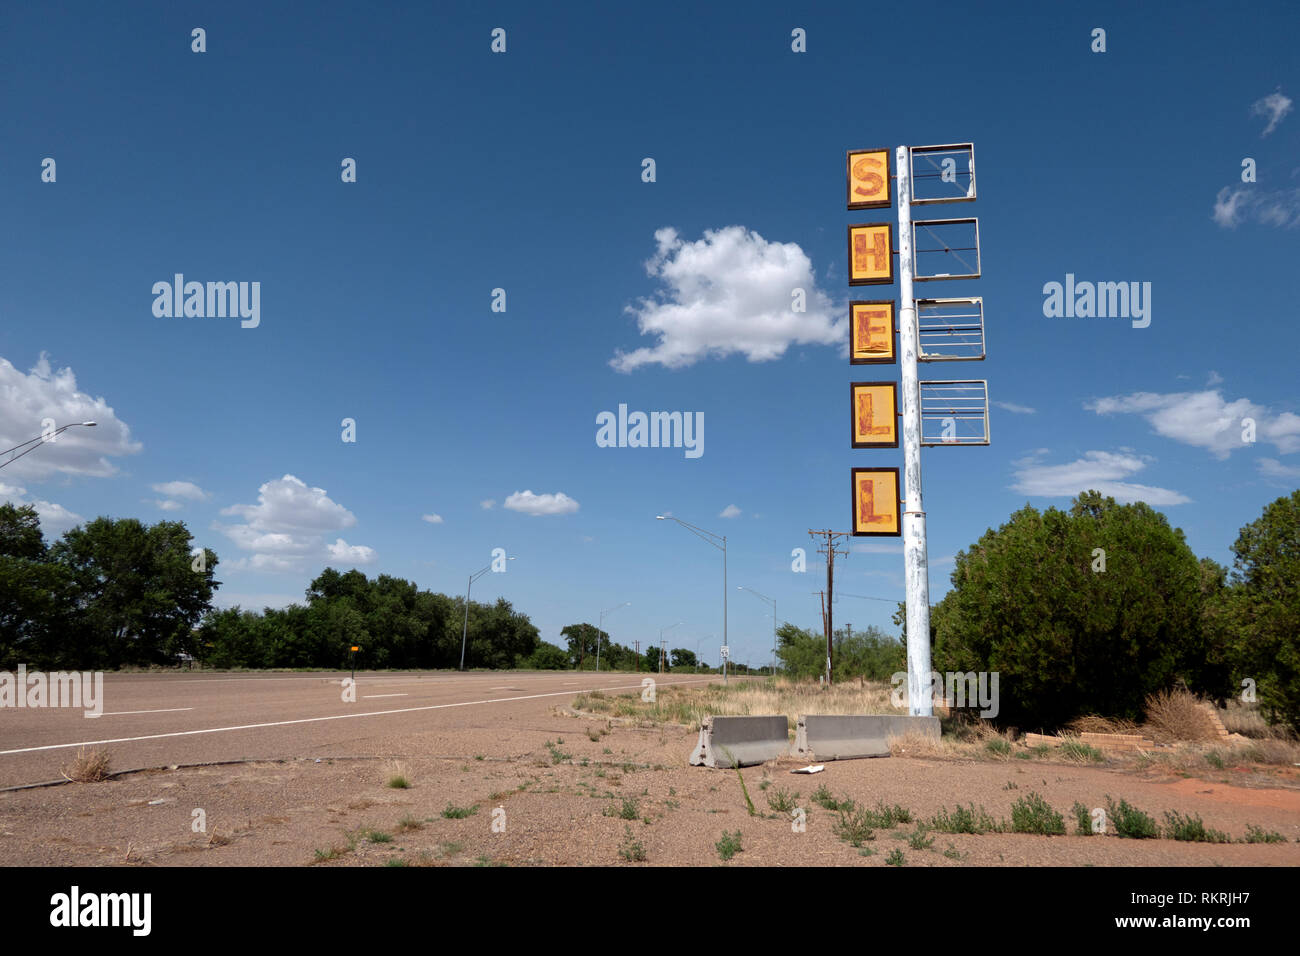 Abandoned Shell Gas Station On A Us Highway In Tucumcari New Mexico United States Of America Along The Iconic Route 66 View Of A Small American To Stock Photo Alamy